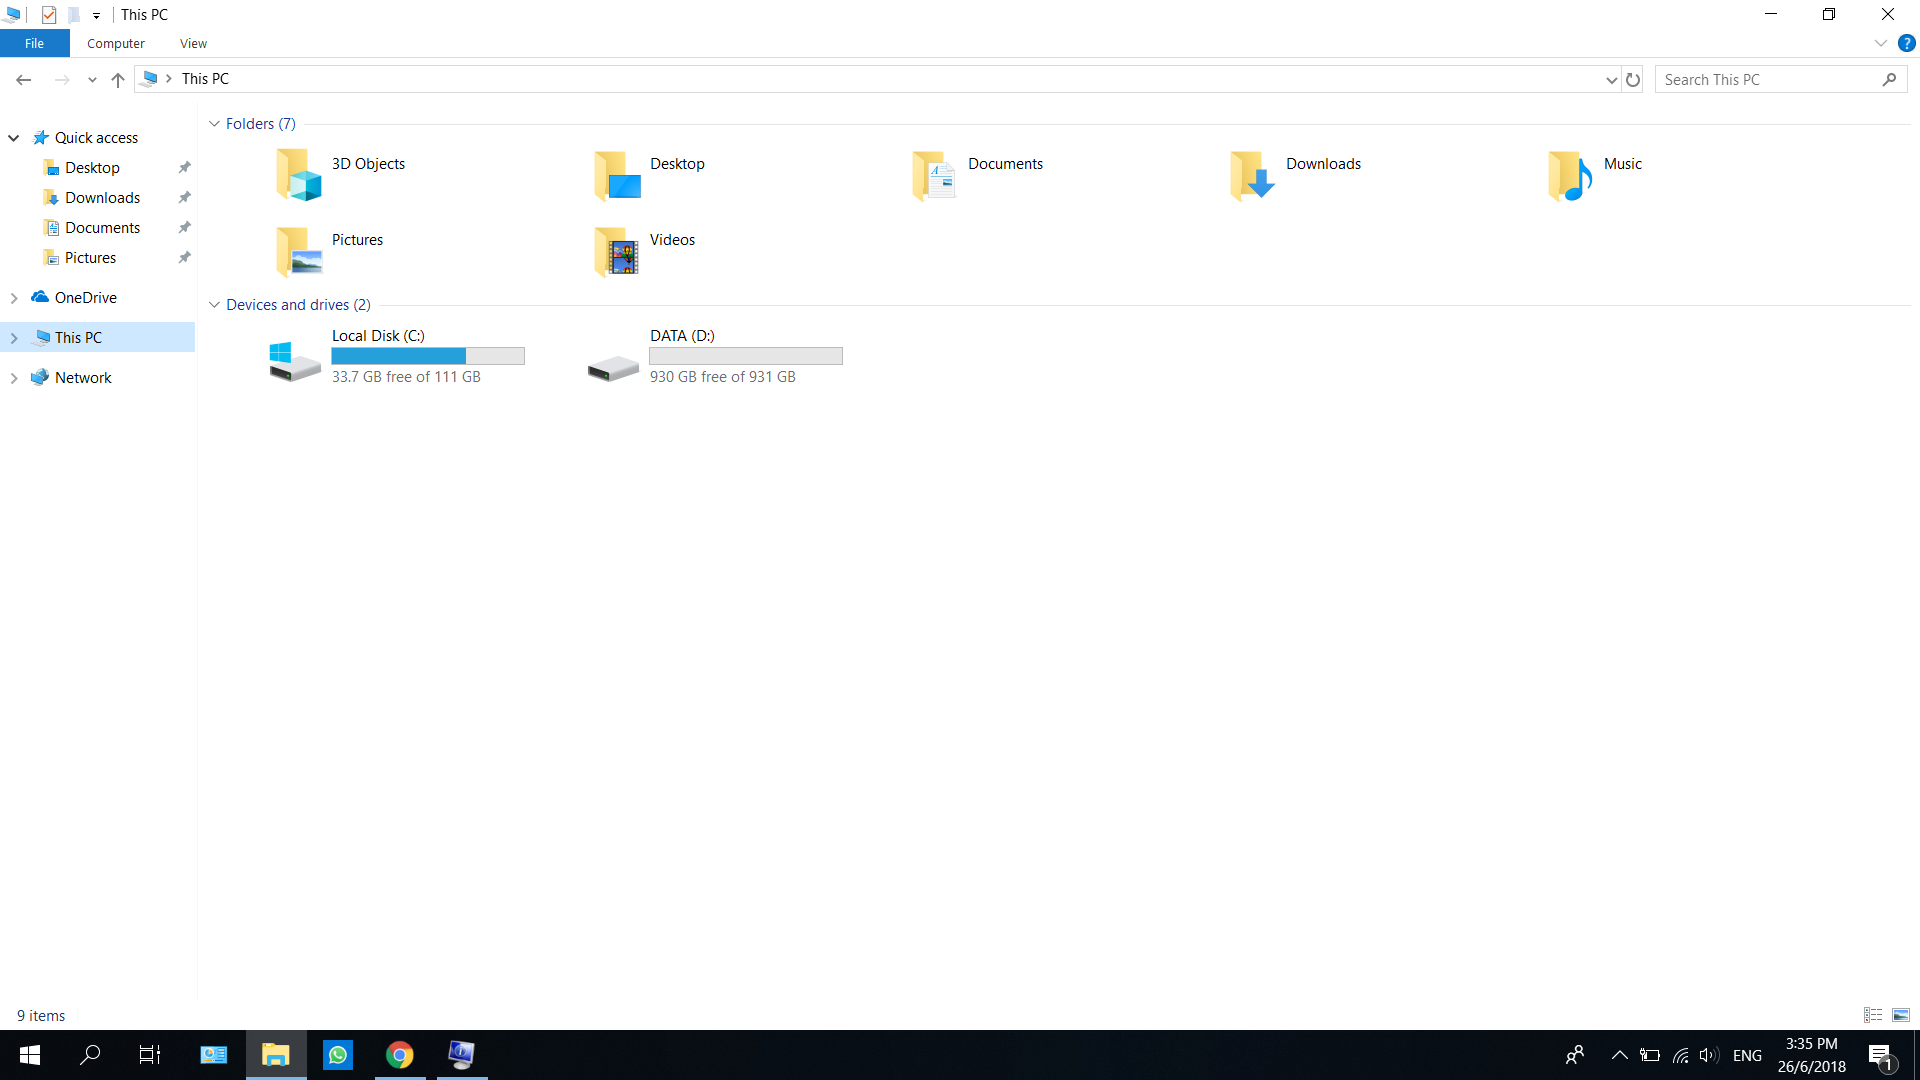 Storage showing as double the actual SSD size daee5787-2572-438c-b01e-22d9a9108945?upload=true.png